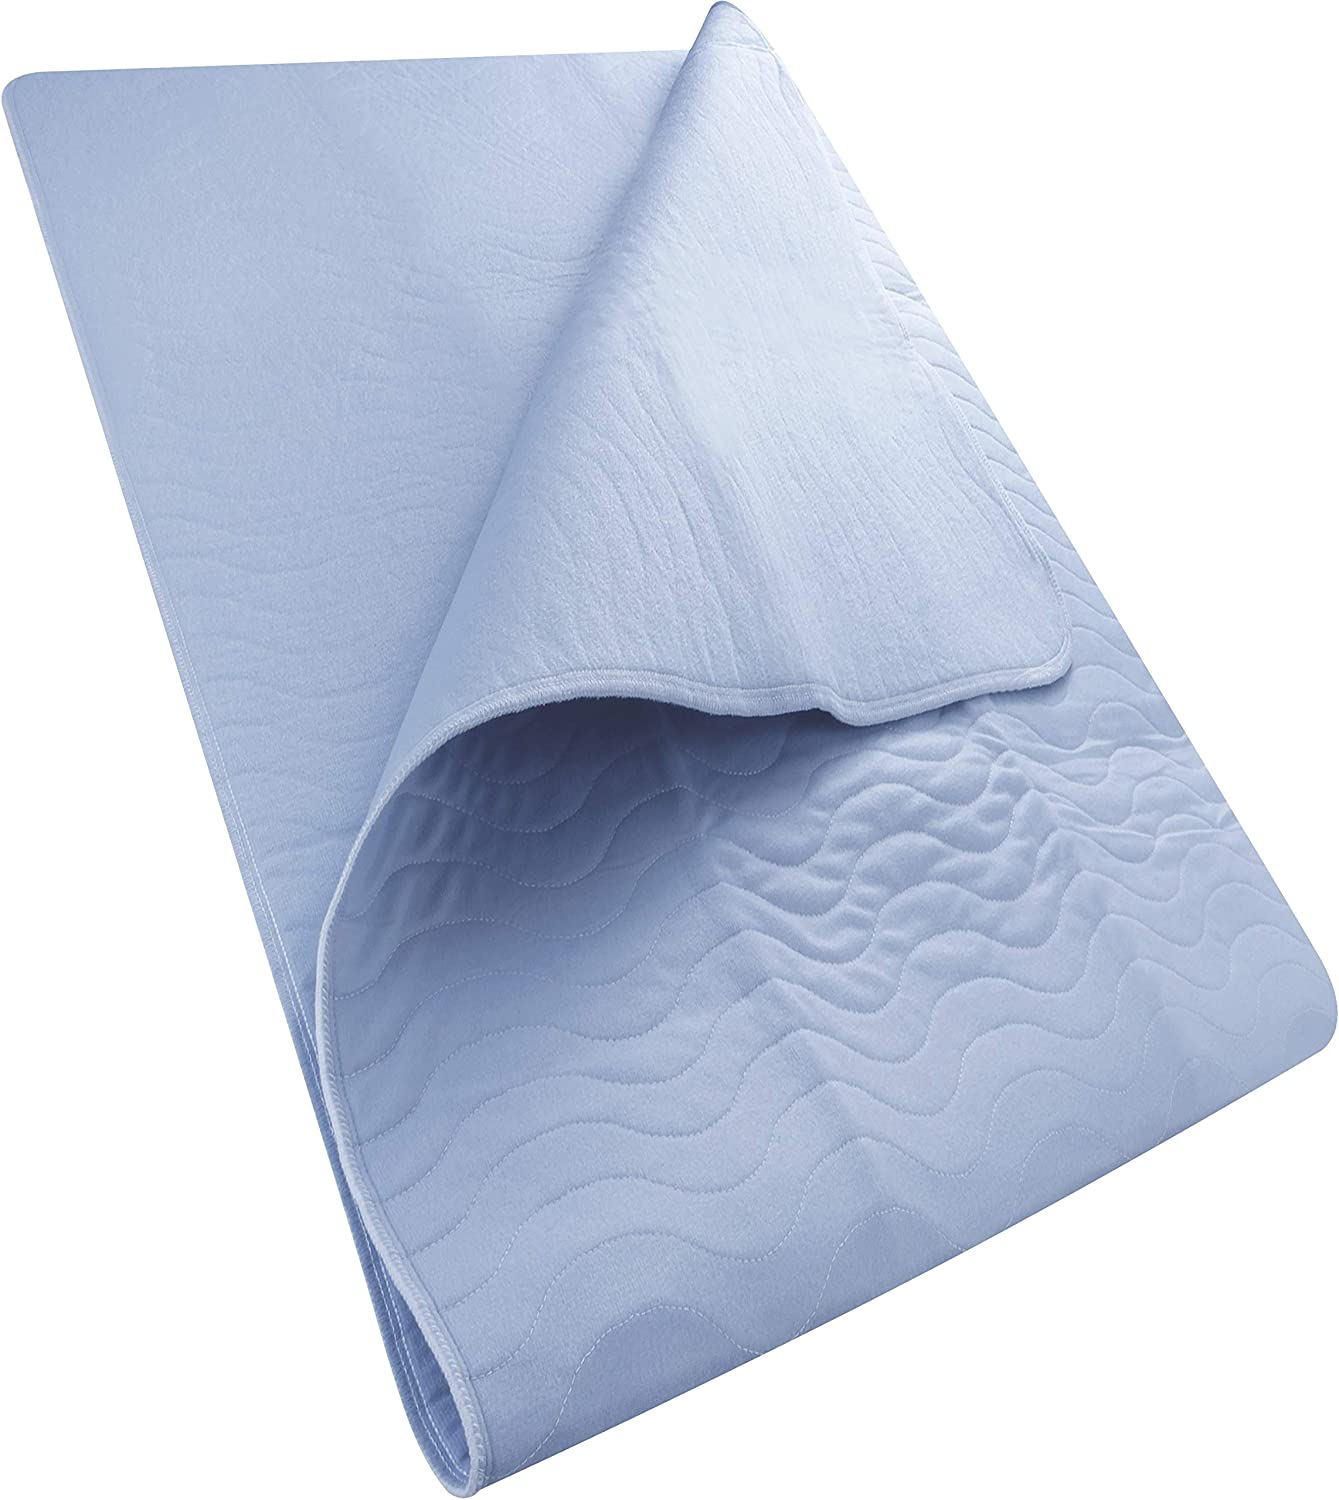 Utopia Bedding Quilted Waterproof Incontinence Pad/Underpad 30 x 70 Inches (Single)